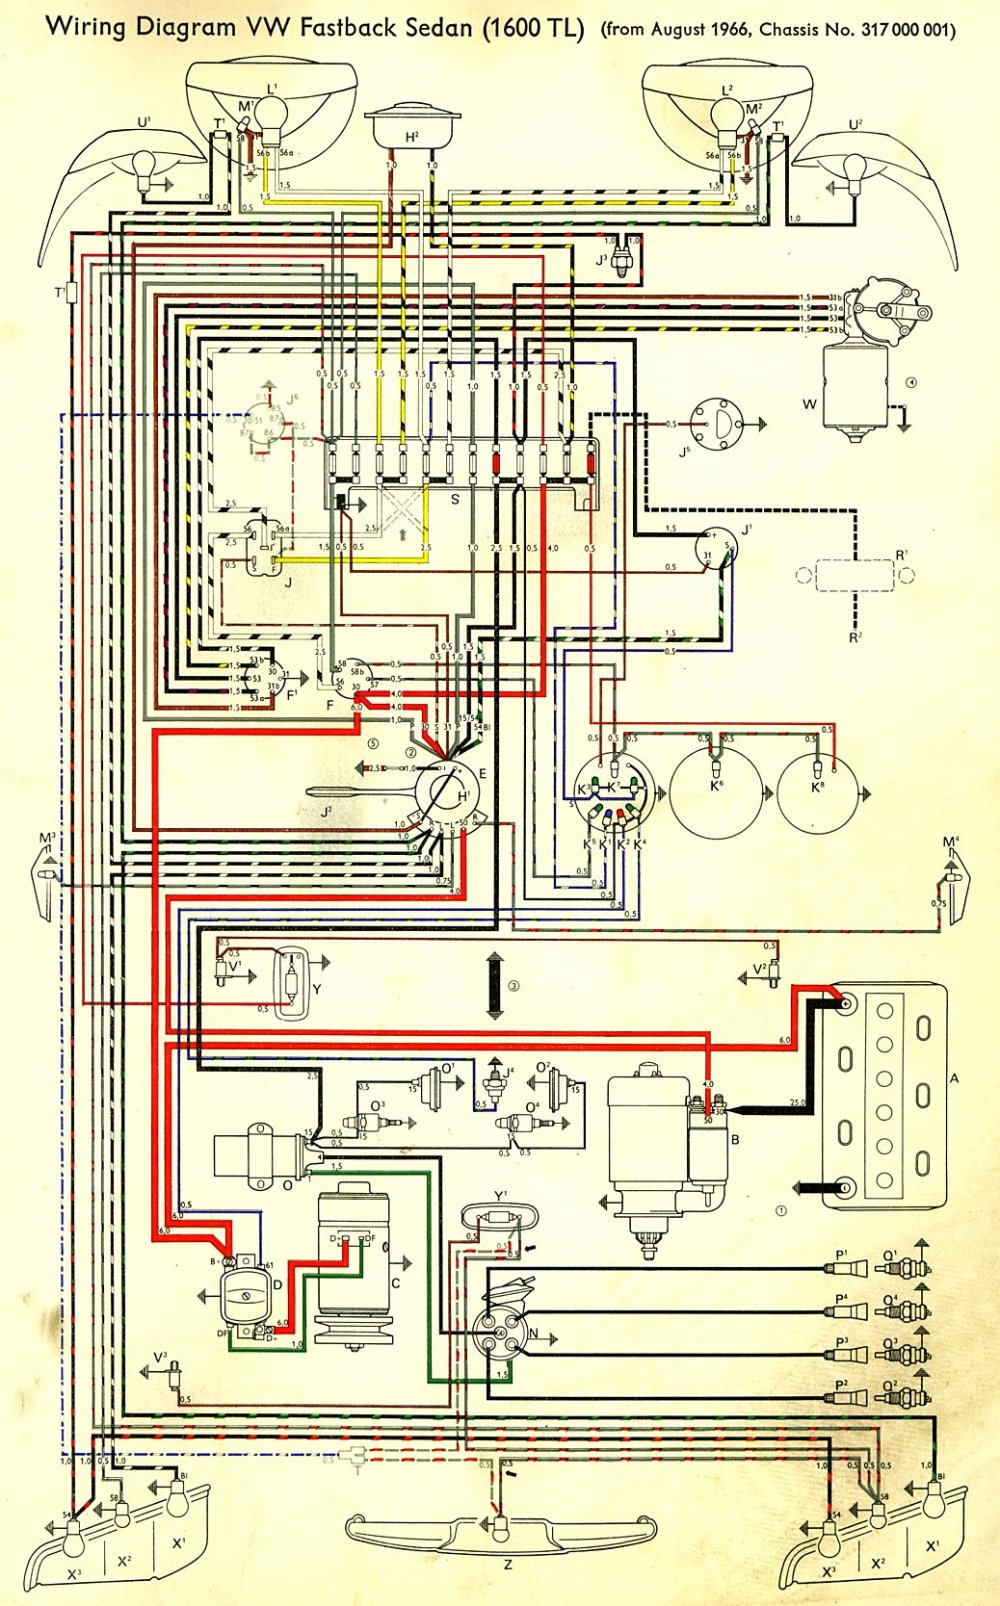 medium resolution of 1967 vw beetle wiring harness diagram simple wiring schema baja bug wiring diagram 67 vw bug wiring diagram